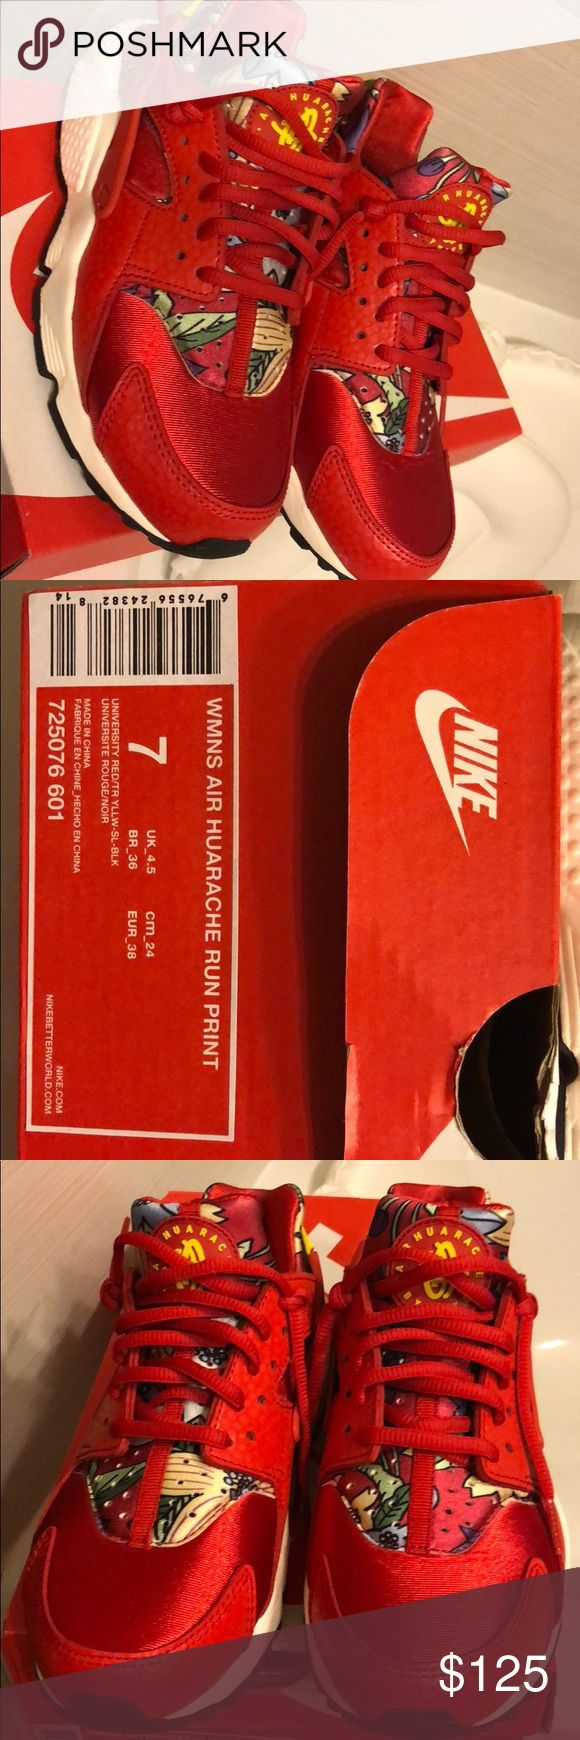 RARE Nike Huarache Run Print Red & floral print huarache - this sneaker runs small by 1/2 to whole size. Have not been worn outside, comes with original box. Nike Shoes Sneakers